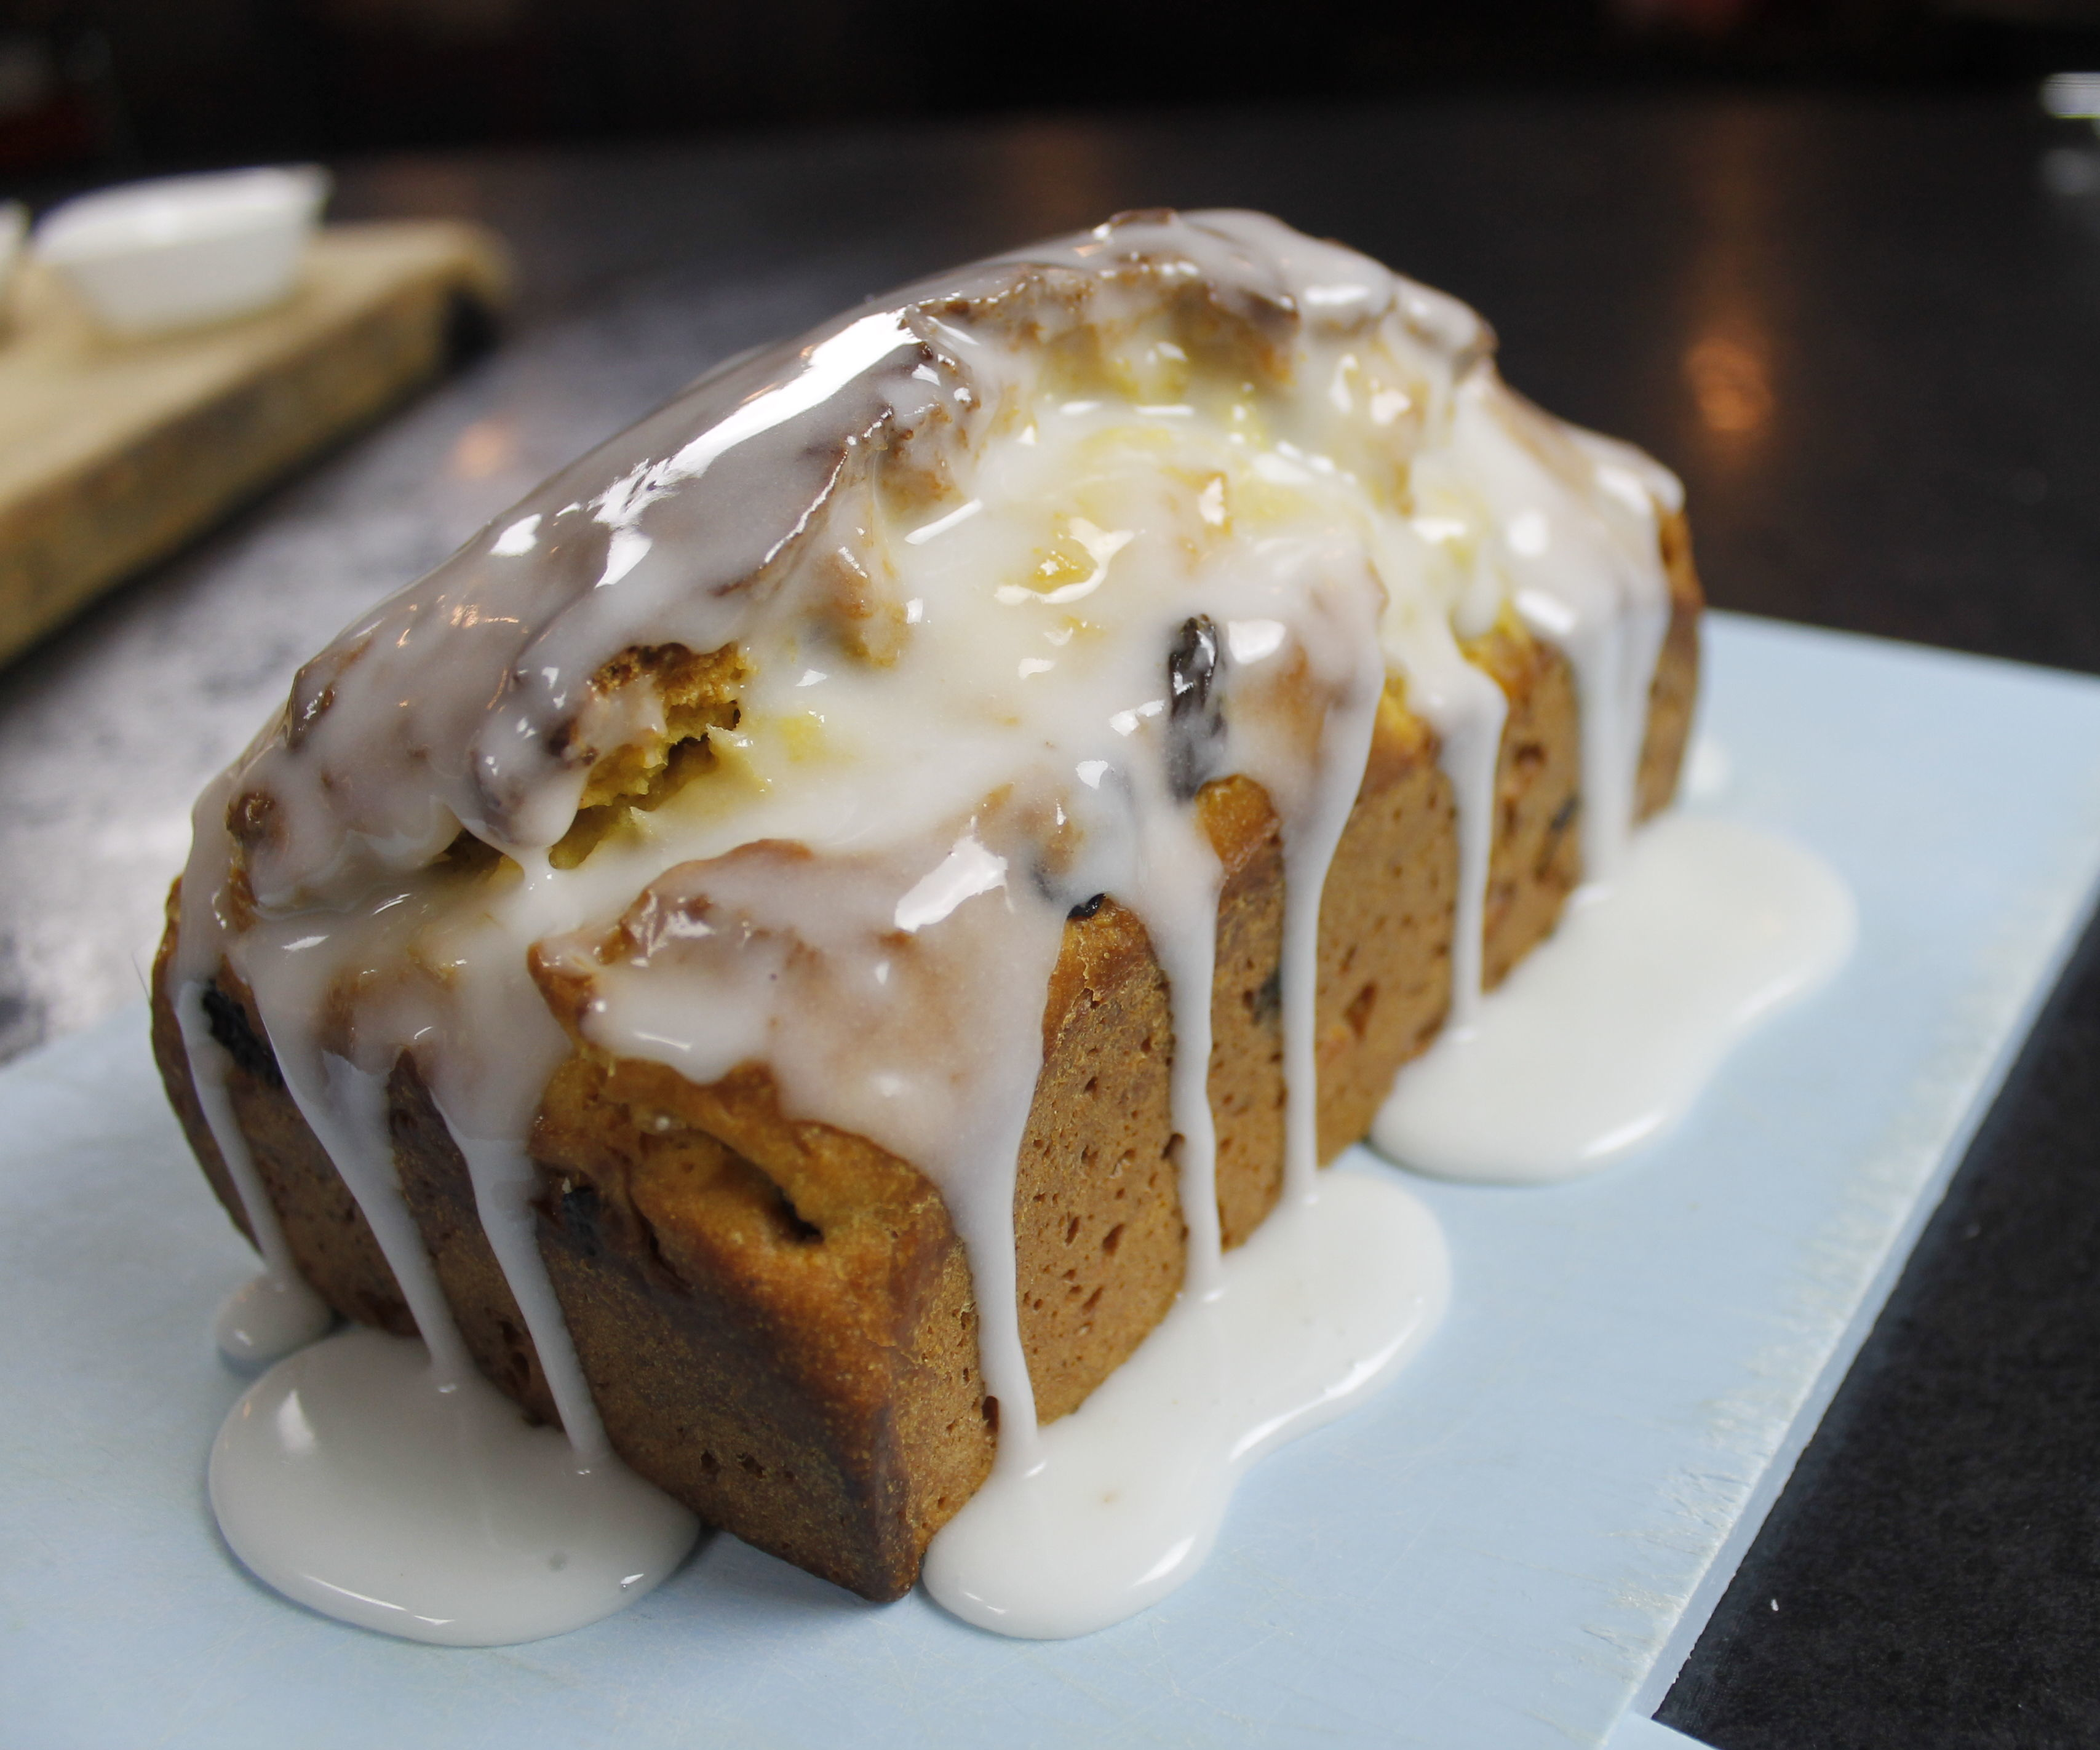 Sourdough Fruit Loaf (similar to Russian Easter Bread)